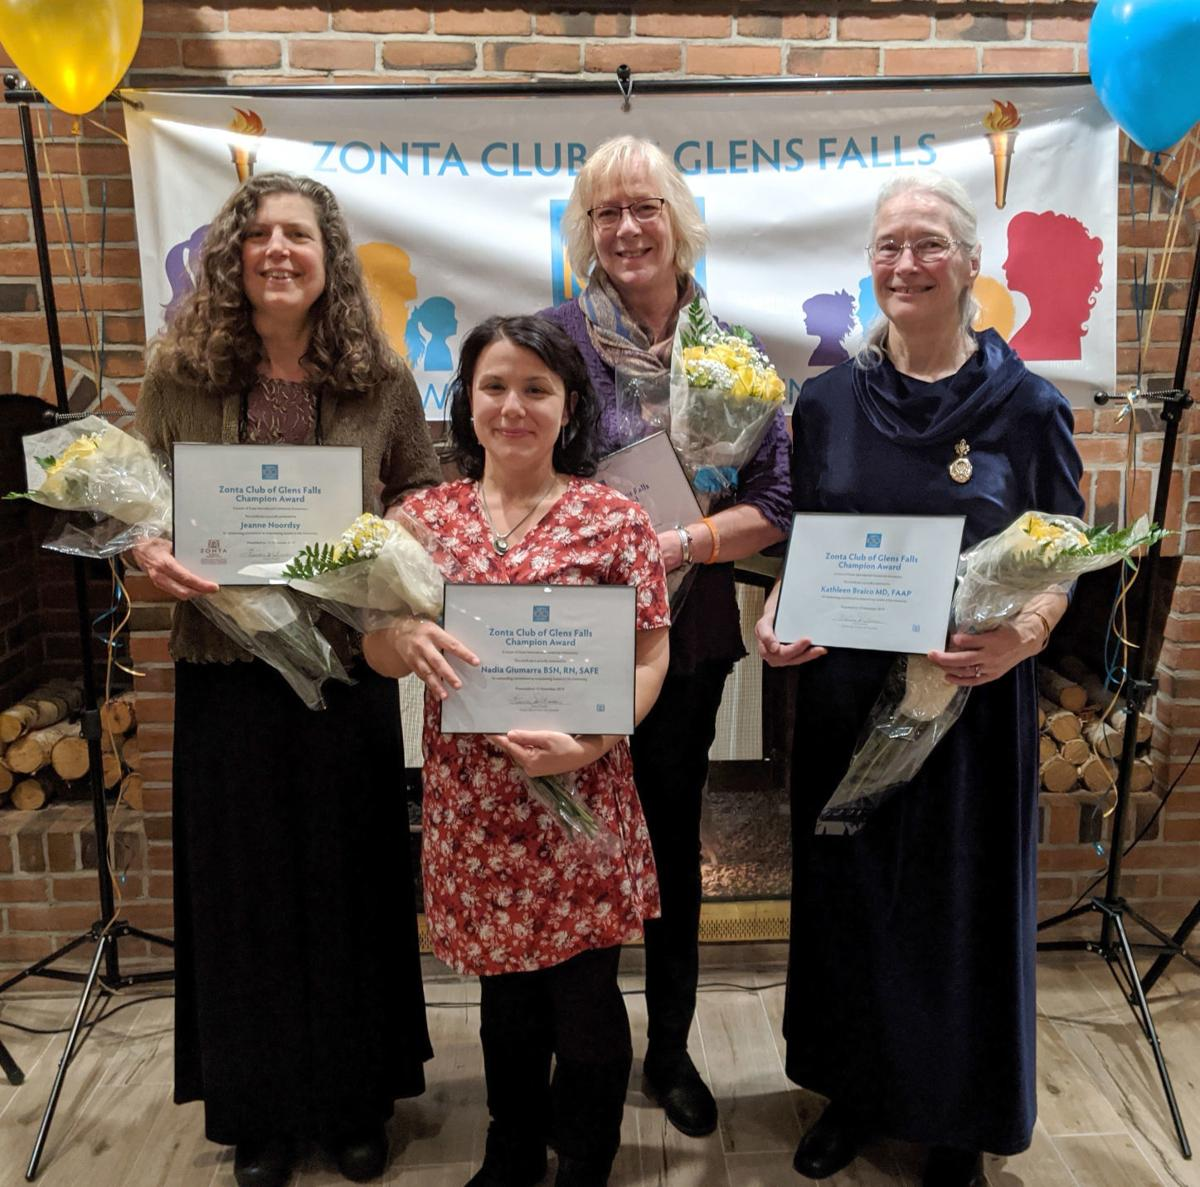 Zonta honors four with Champion Award